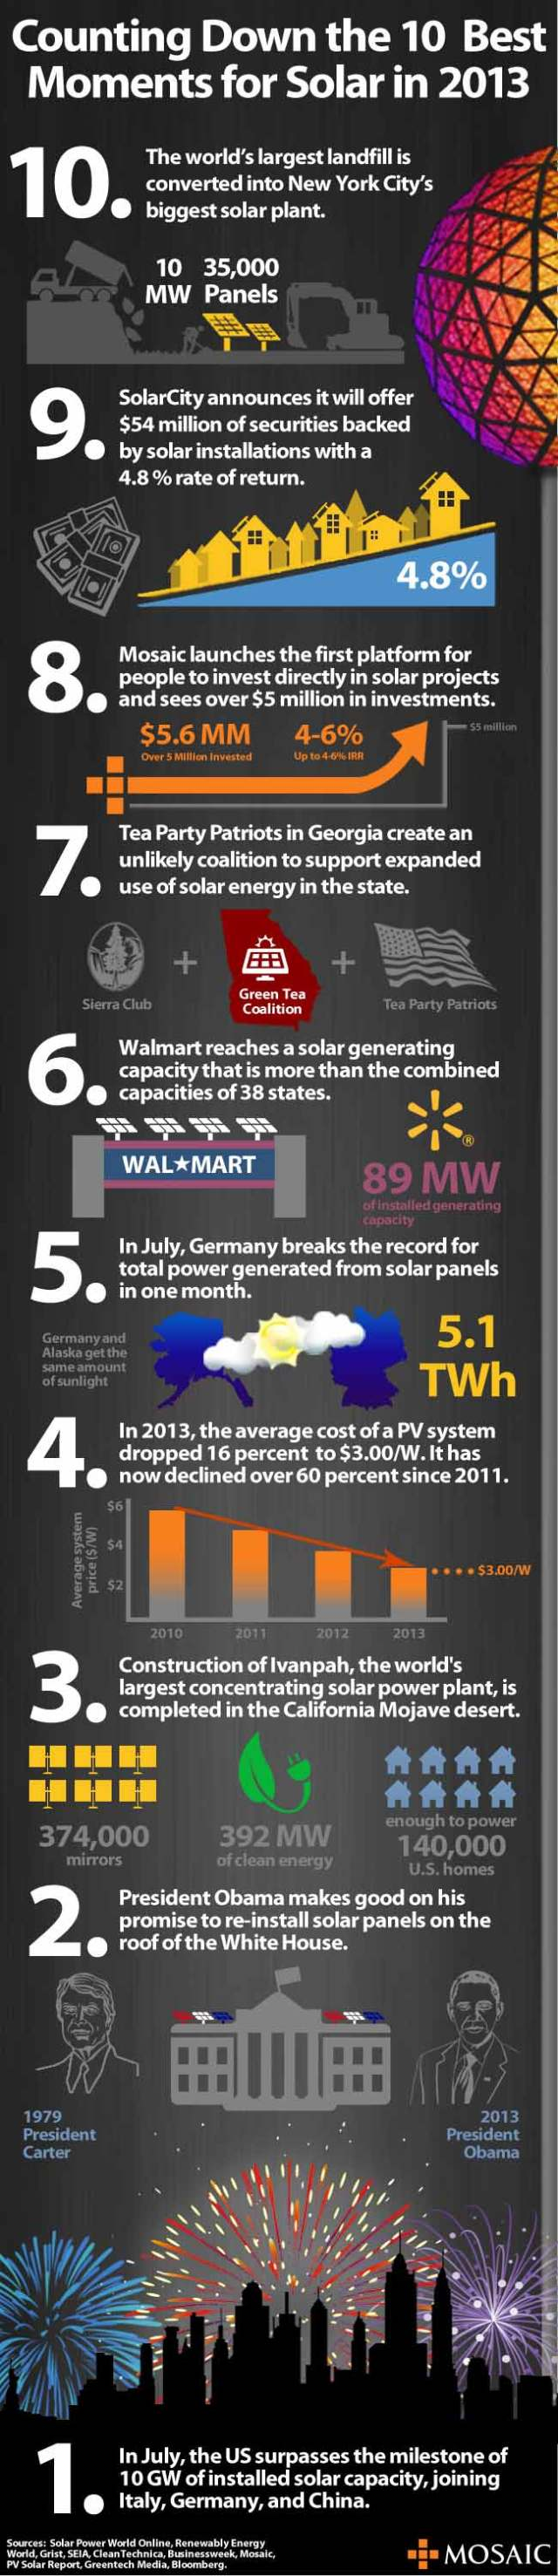 2013 Top Ten Solar Power Achievements (Infographic)